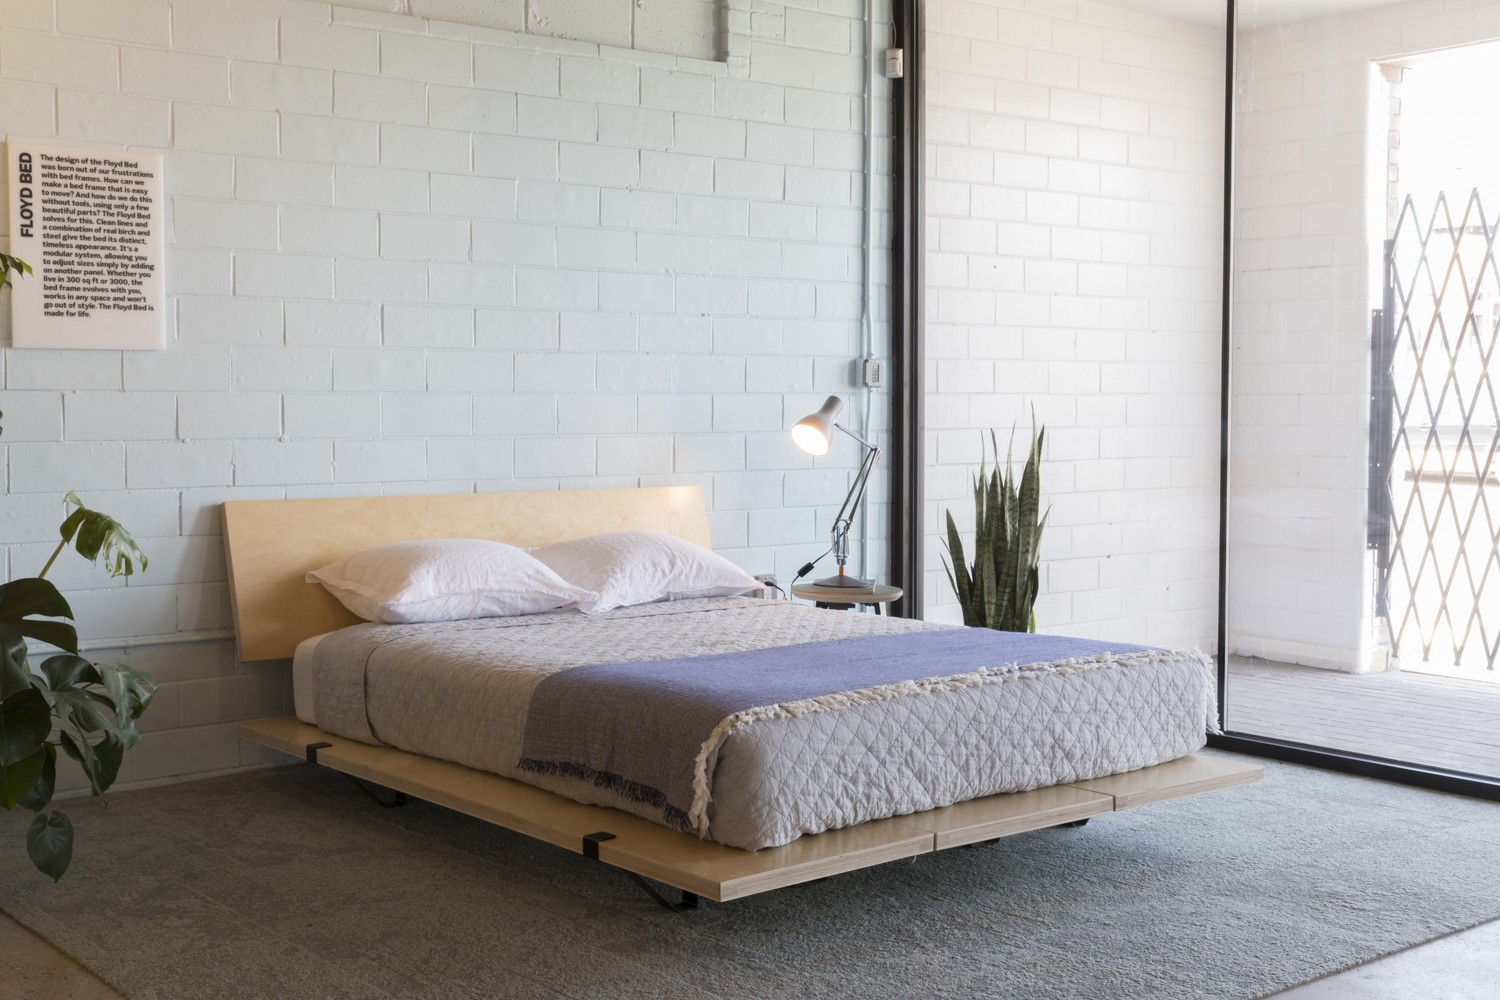 A Millennial Furniture Store Called Floyd Is Opening In Eastern